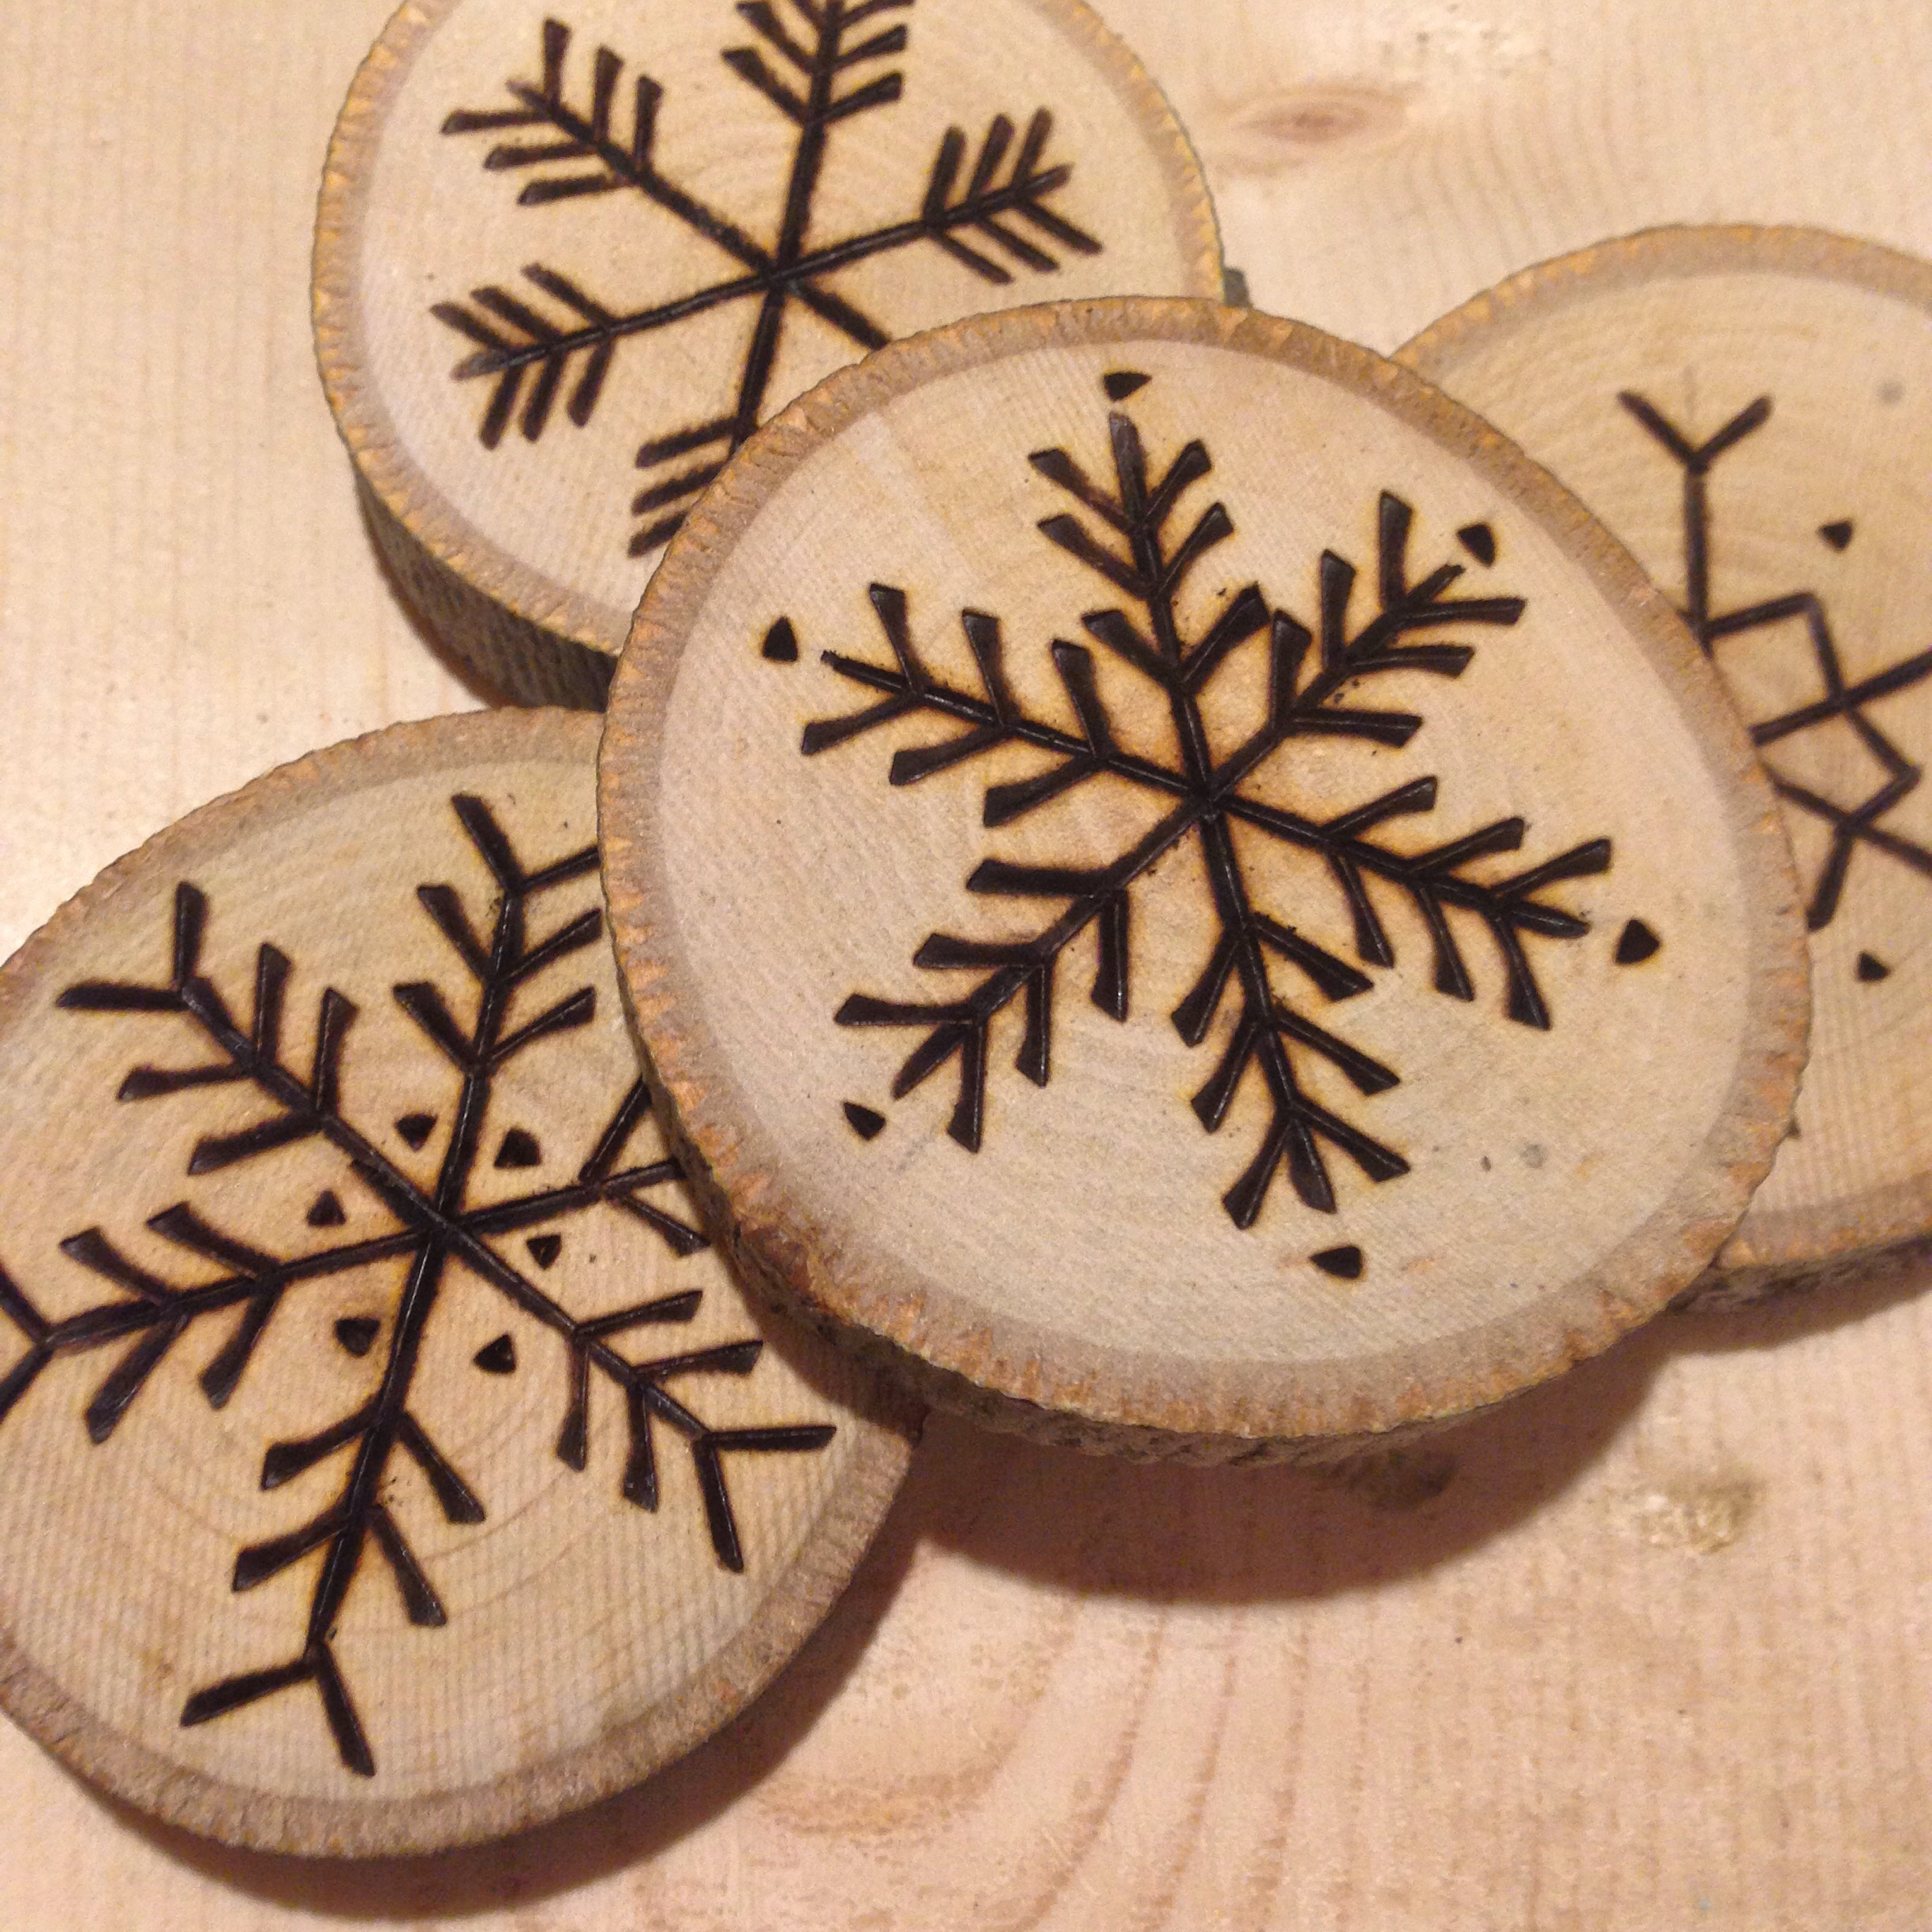 Hand-etched maple snowflake ornaments by Birch Landing Home